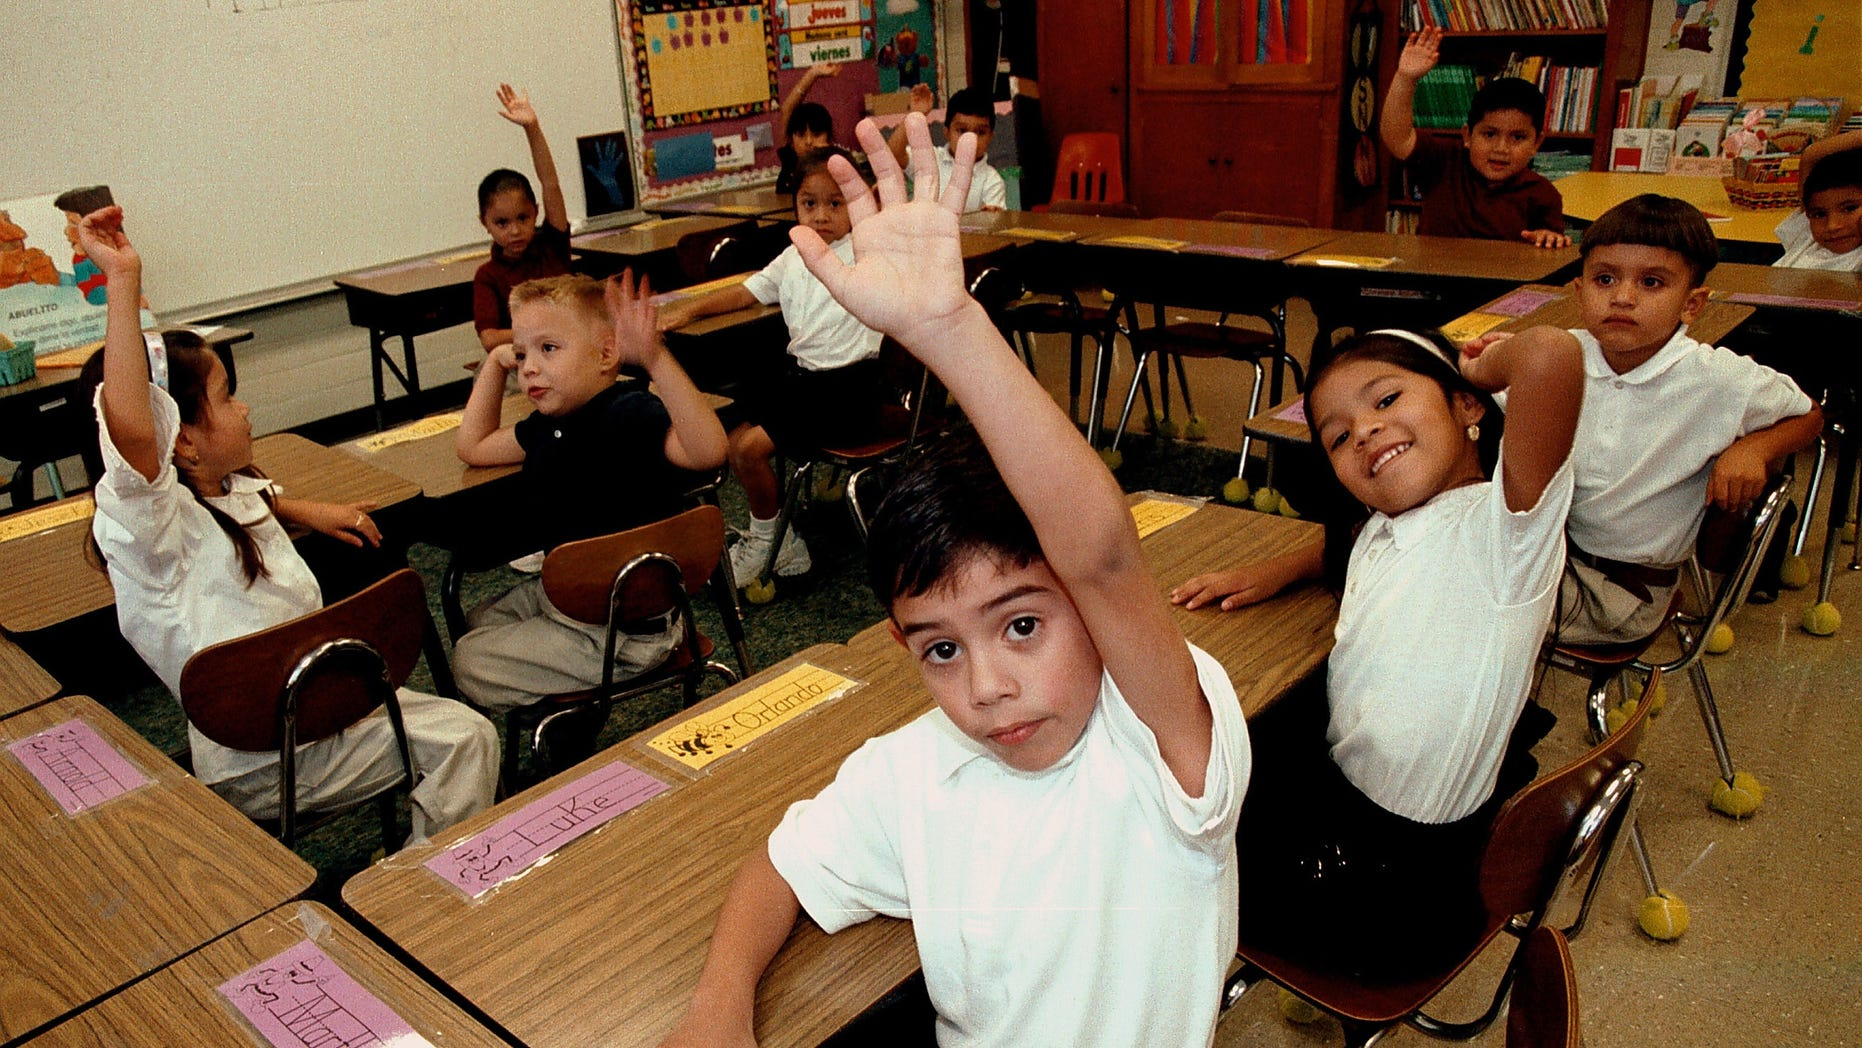 Hispanic students raise their hands to answer a question during a class taught in Spanish at Birdwell Elementary School September 11, 2003 in Tyler, Texas. (Photo by Mario Villafuerte/Getty Images)